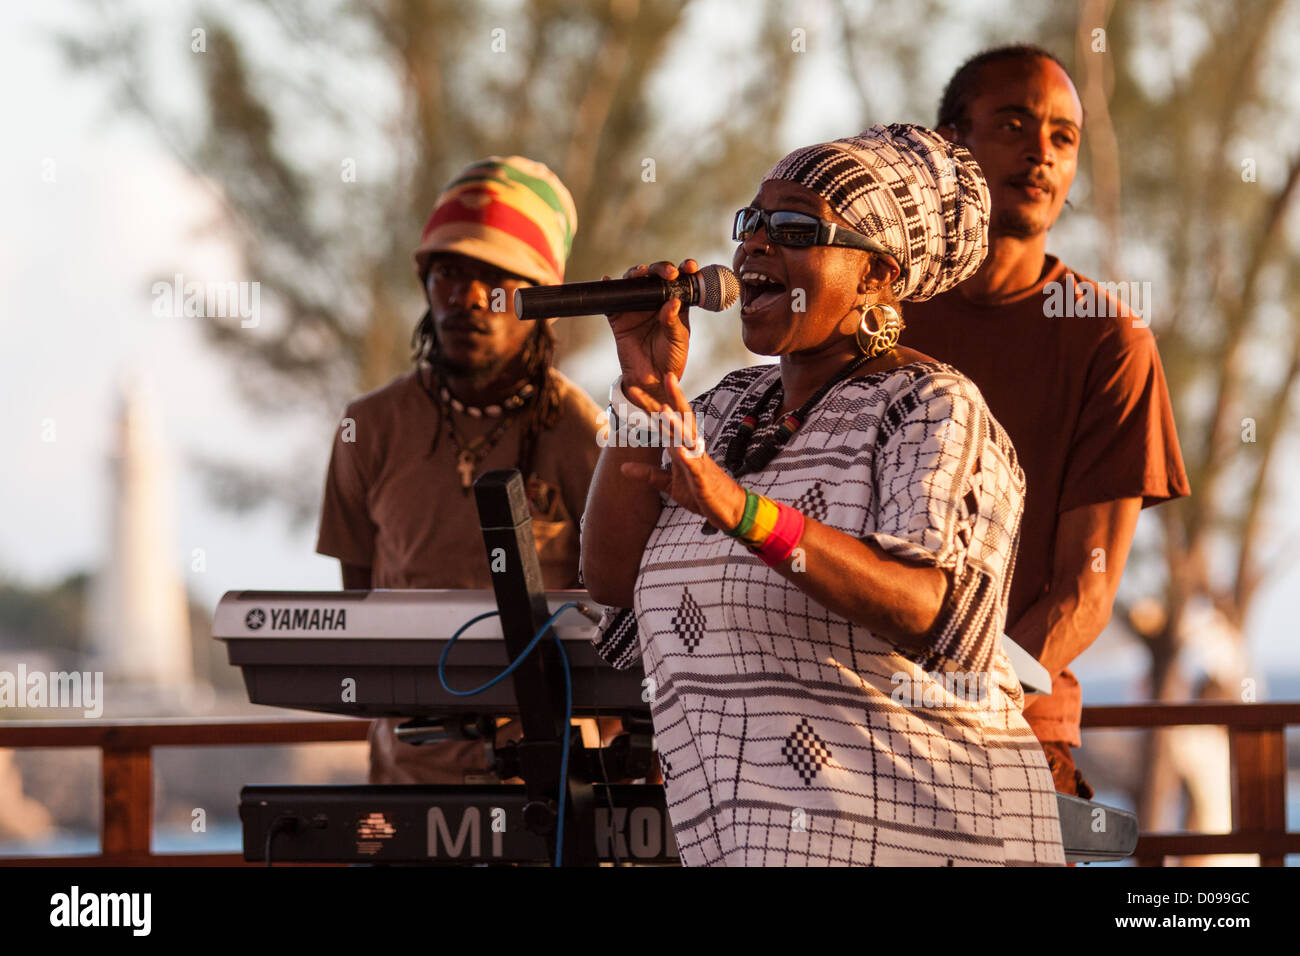 REGGAE SINGER AND HER BAND DURING A CONCERT AT RICK'S CAFE NEGRIL JAMAICA THE CARIBBEAN - Stock Image